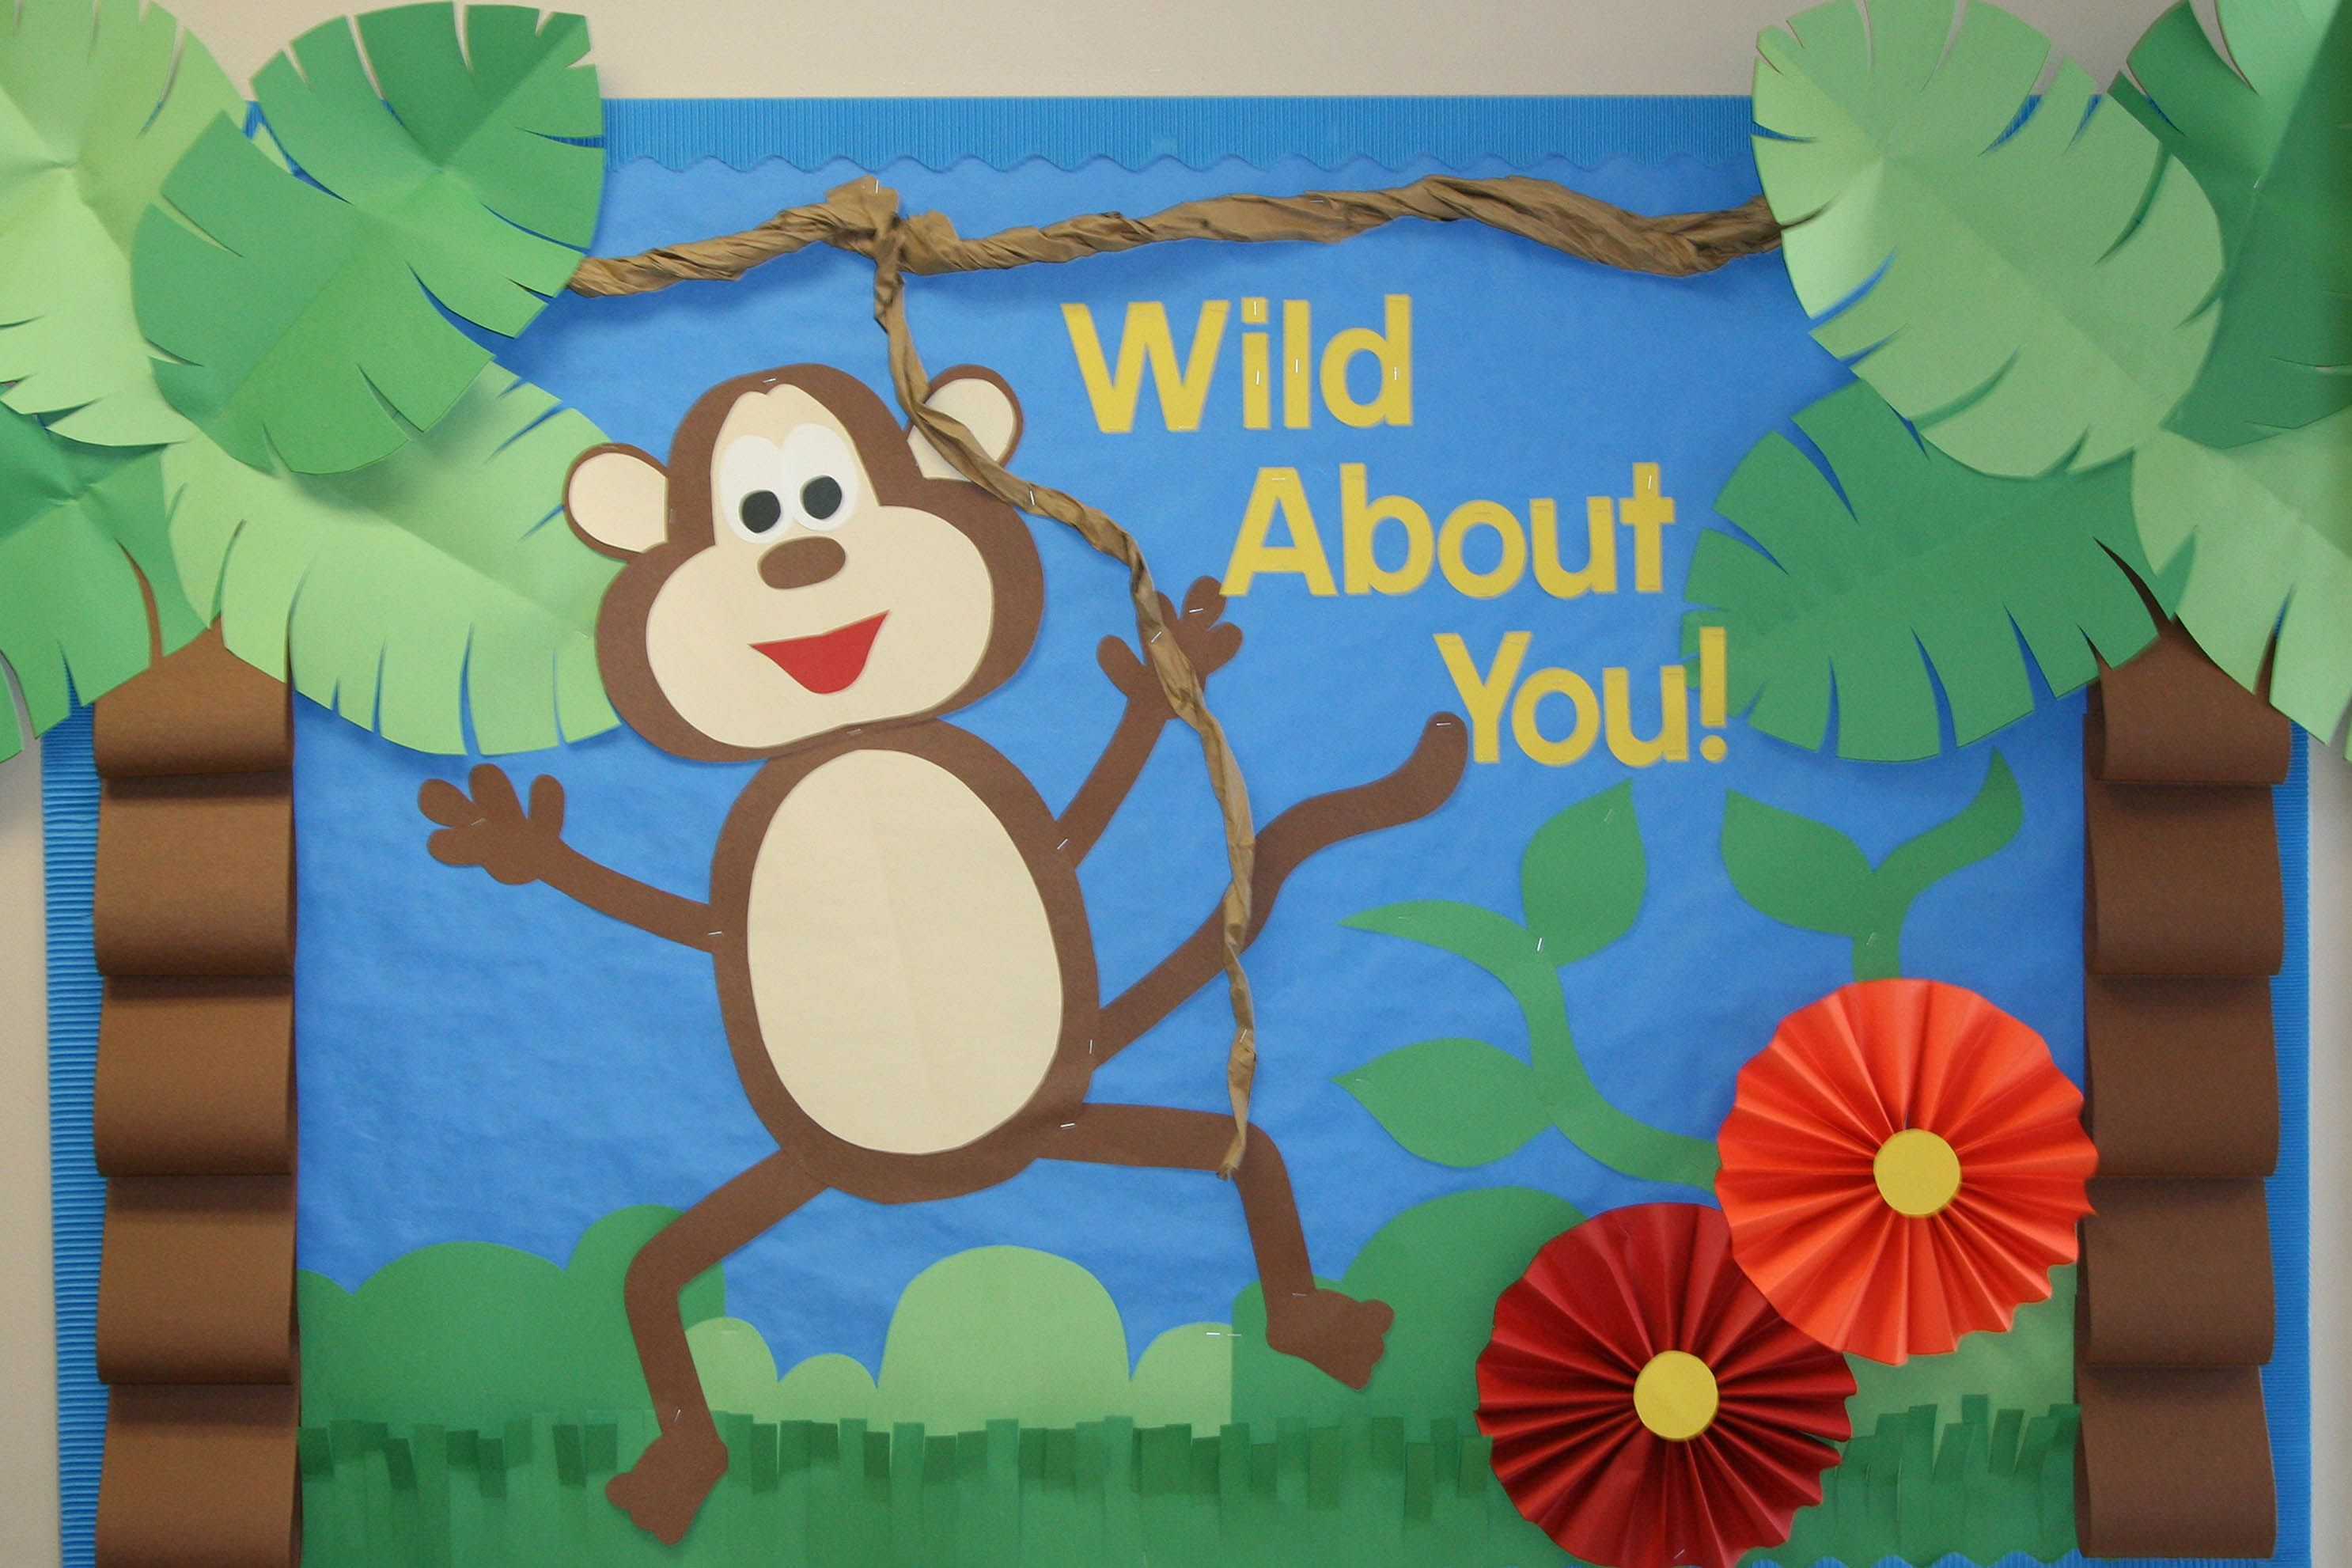 1000 images about bulletin board ideas on pinterest bulletin boards spring bulletin boards and halloween bulletin boards bulletin board ideas